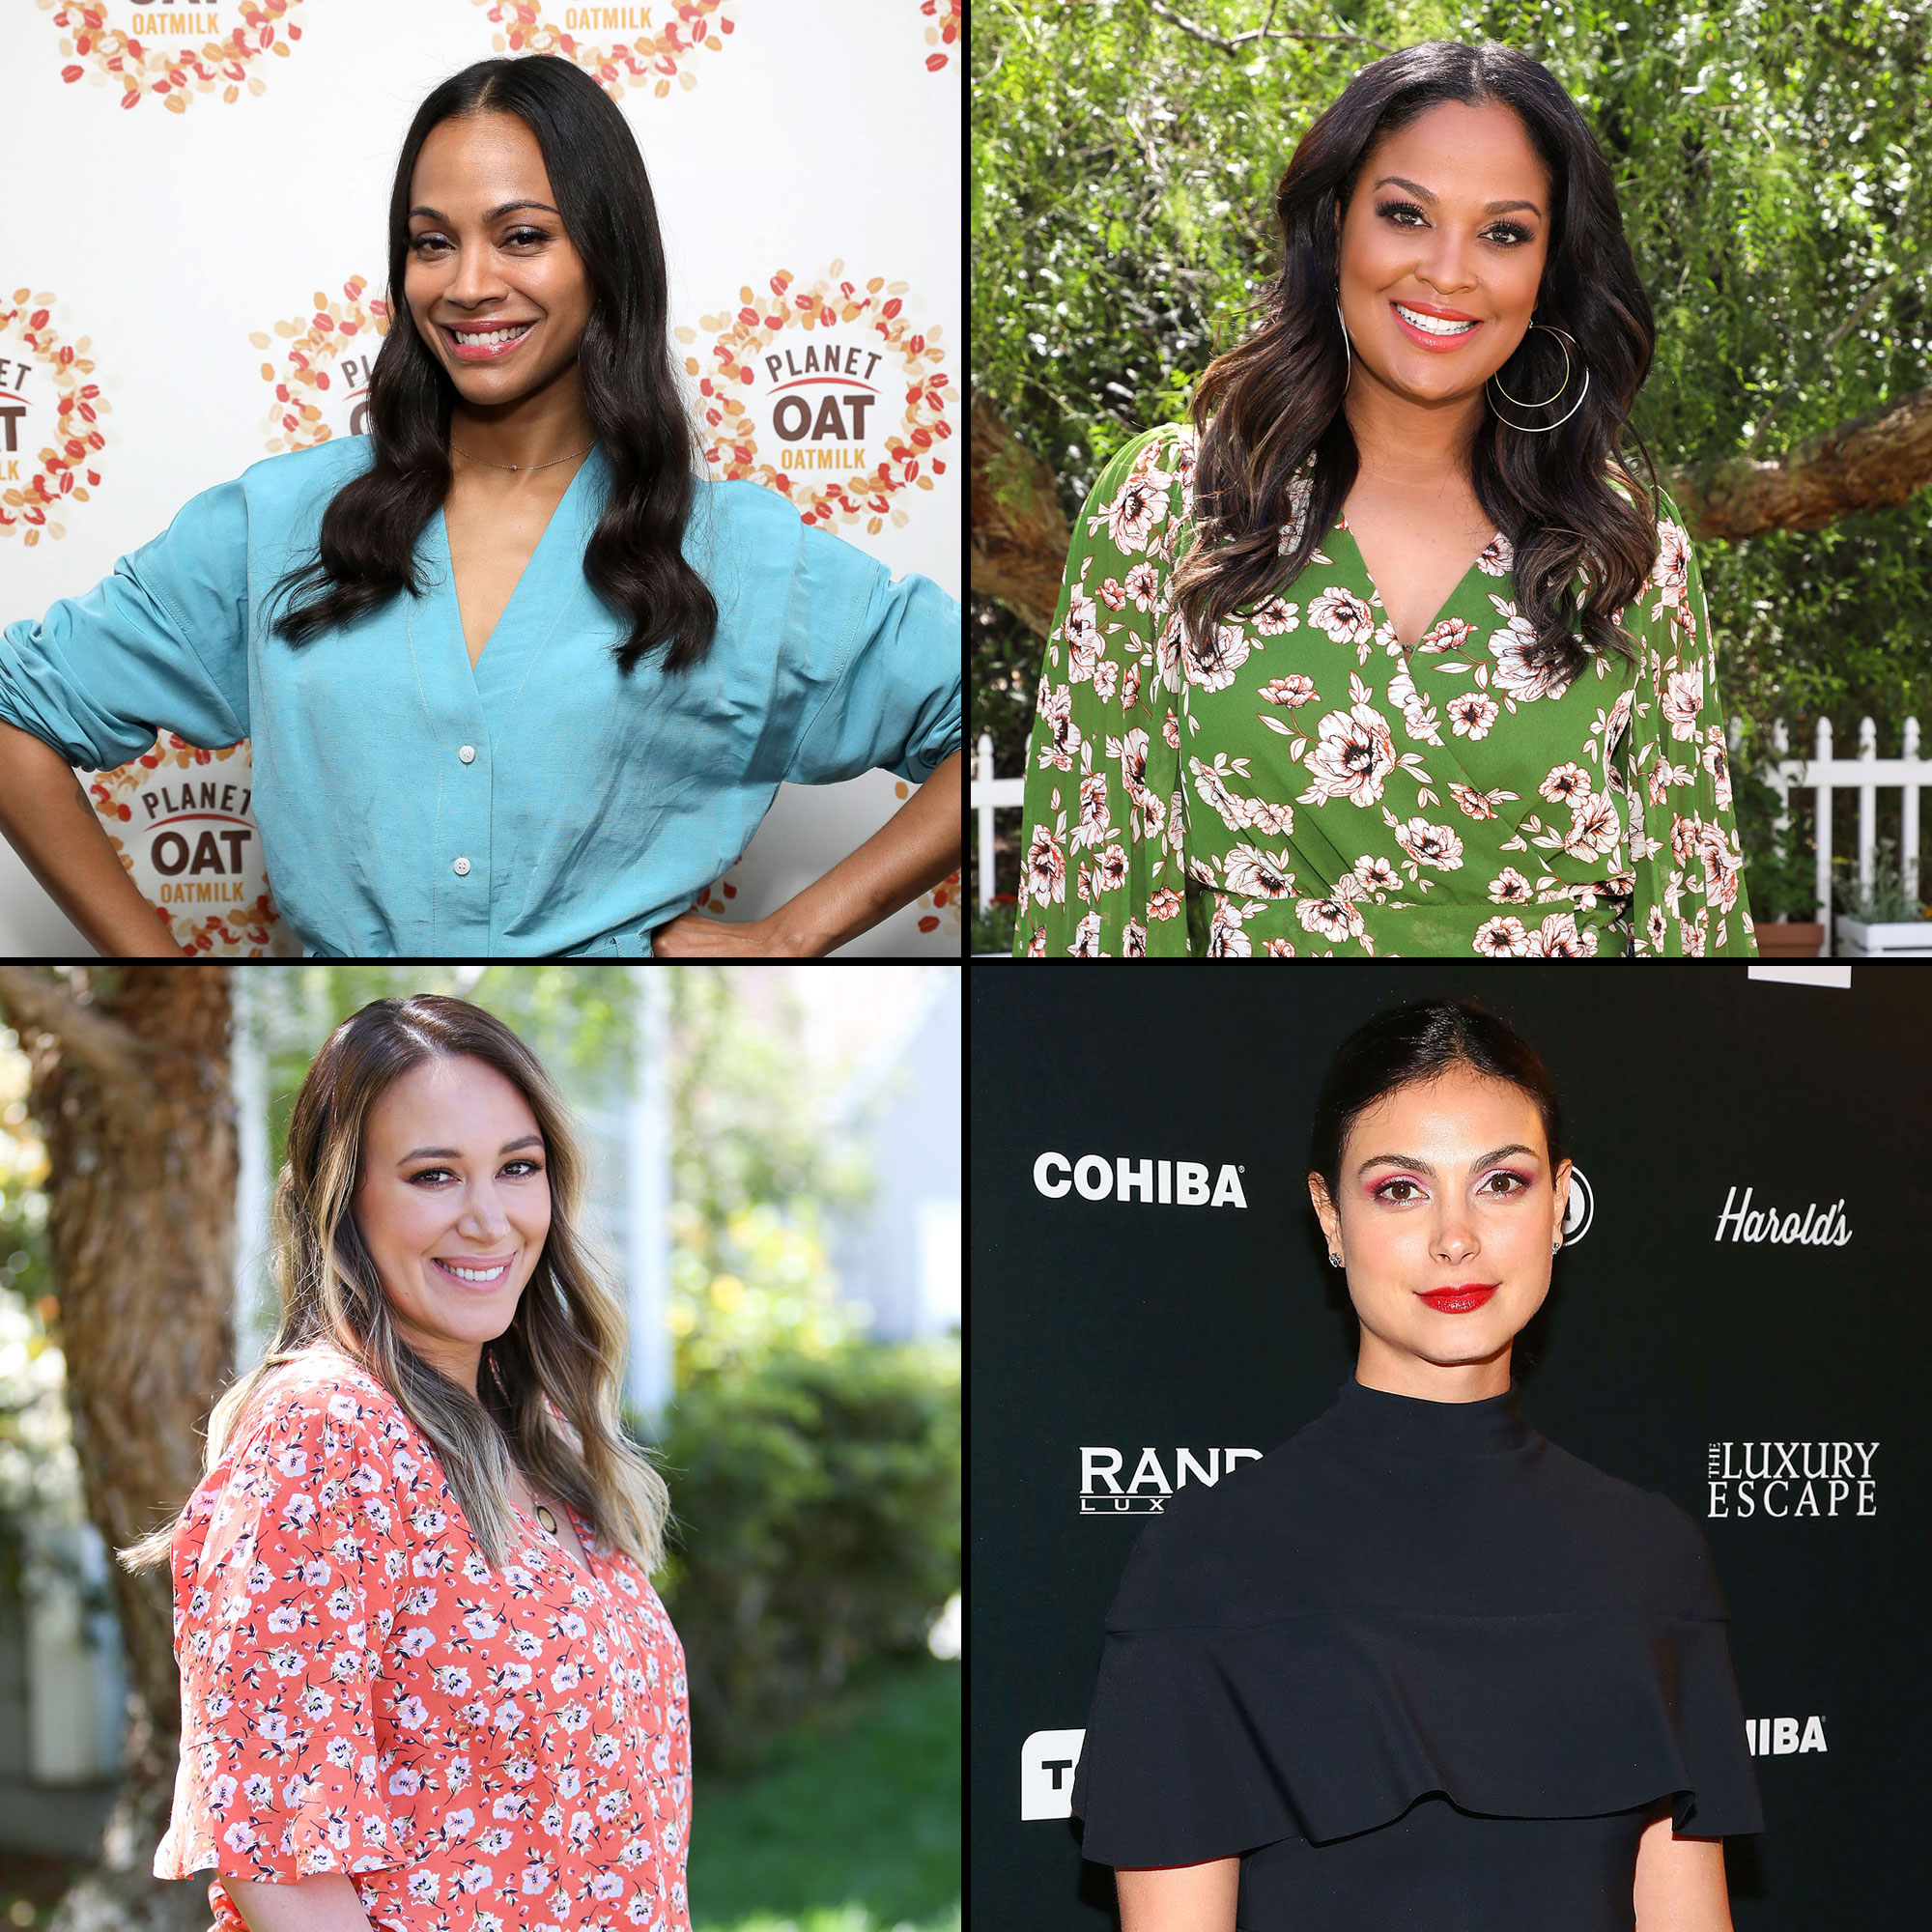 """Zoe, Morena Baccarin, Laila Ali, Haylie Duff Mothers Advice - Zoe Saldana and Planet Oat oatmilk celebrate the product's national launch and planetarium themed pop-ups that will show all the """"out of this world"""" items you can make with Planet Oat at the Kimpton Hotel Palomar on Tuesday, April 23, 2019 in Los Angeles. (Photo by Mark Von Holden/Invision for Planet Oat/AP Images)"""